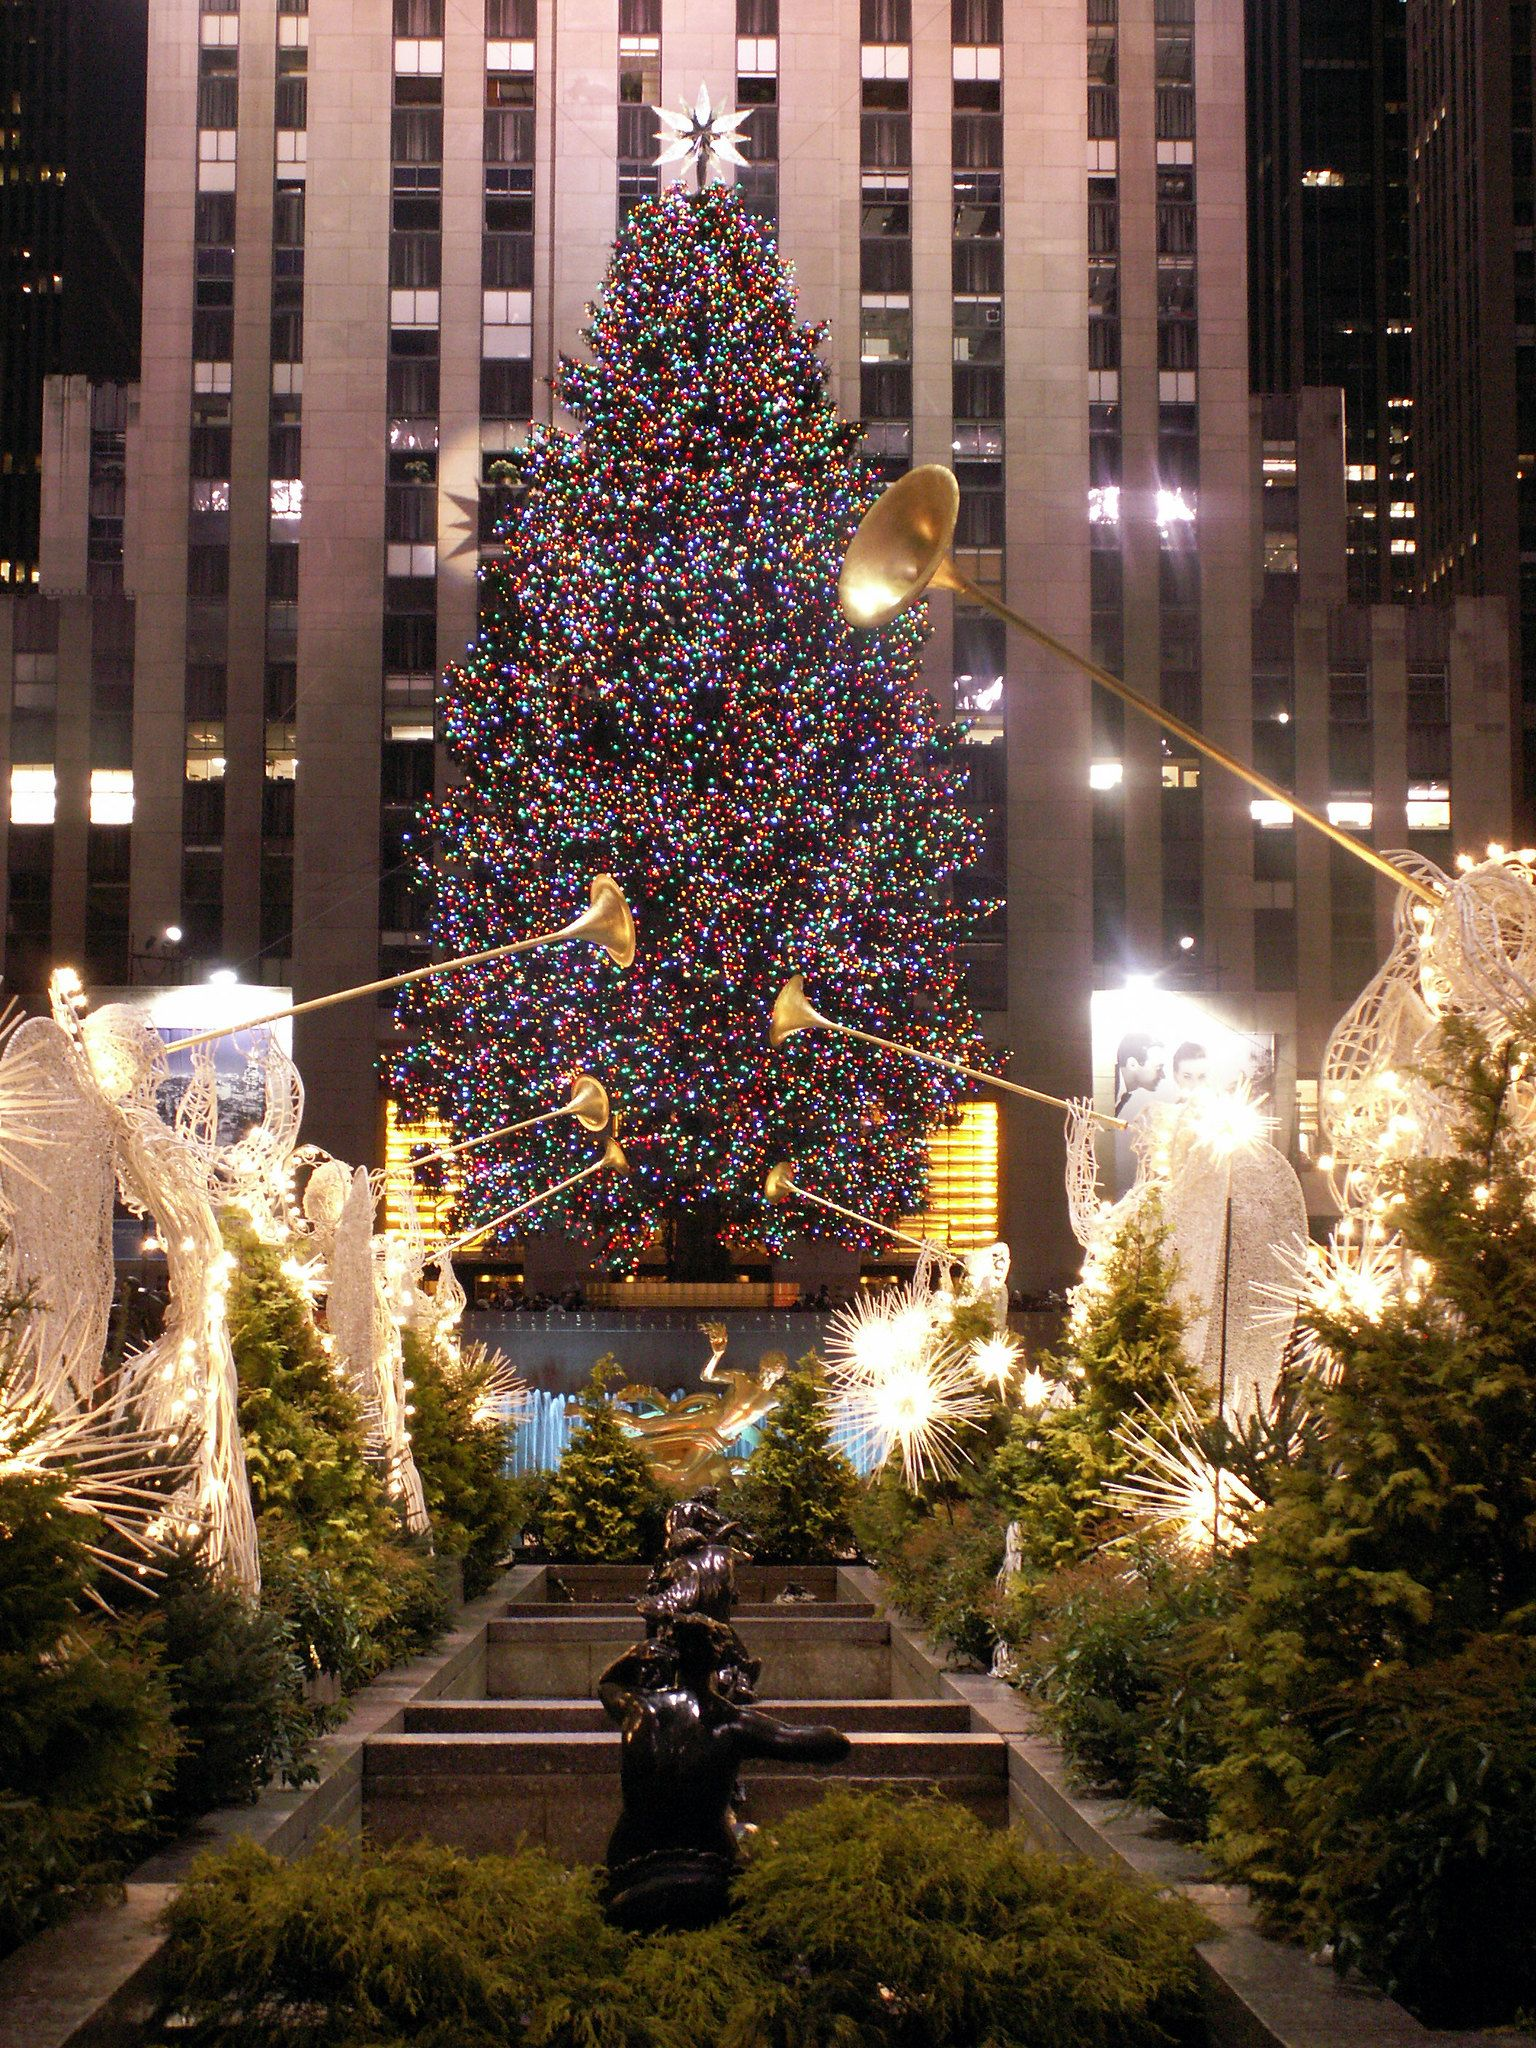 The Christmas Tree At Rockefeller Center In 2020 Rockefeller Center Christmas Tree Rockefeller Center Christmas New York Christmas